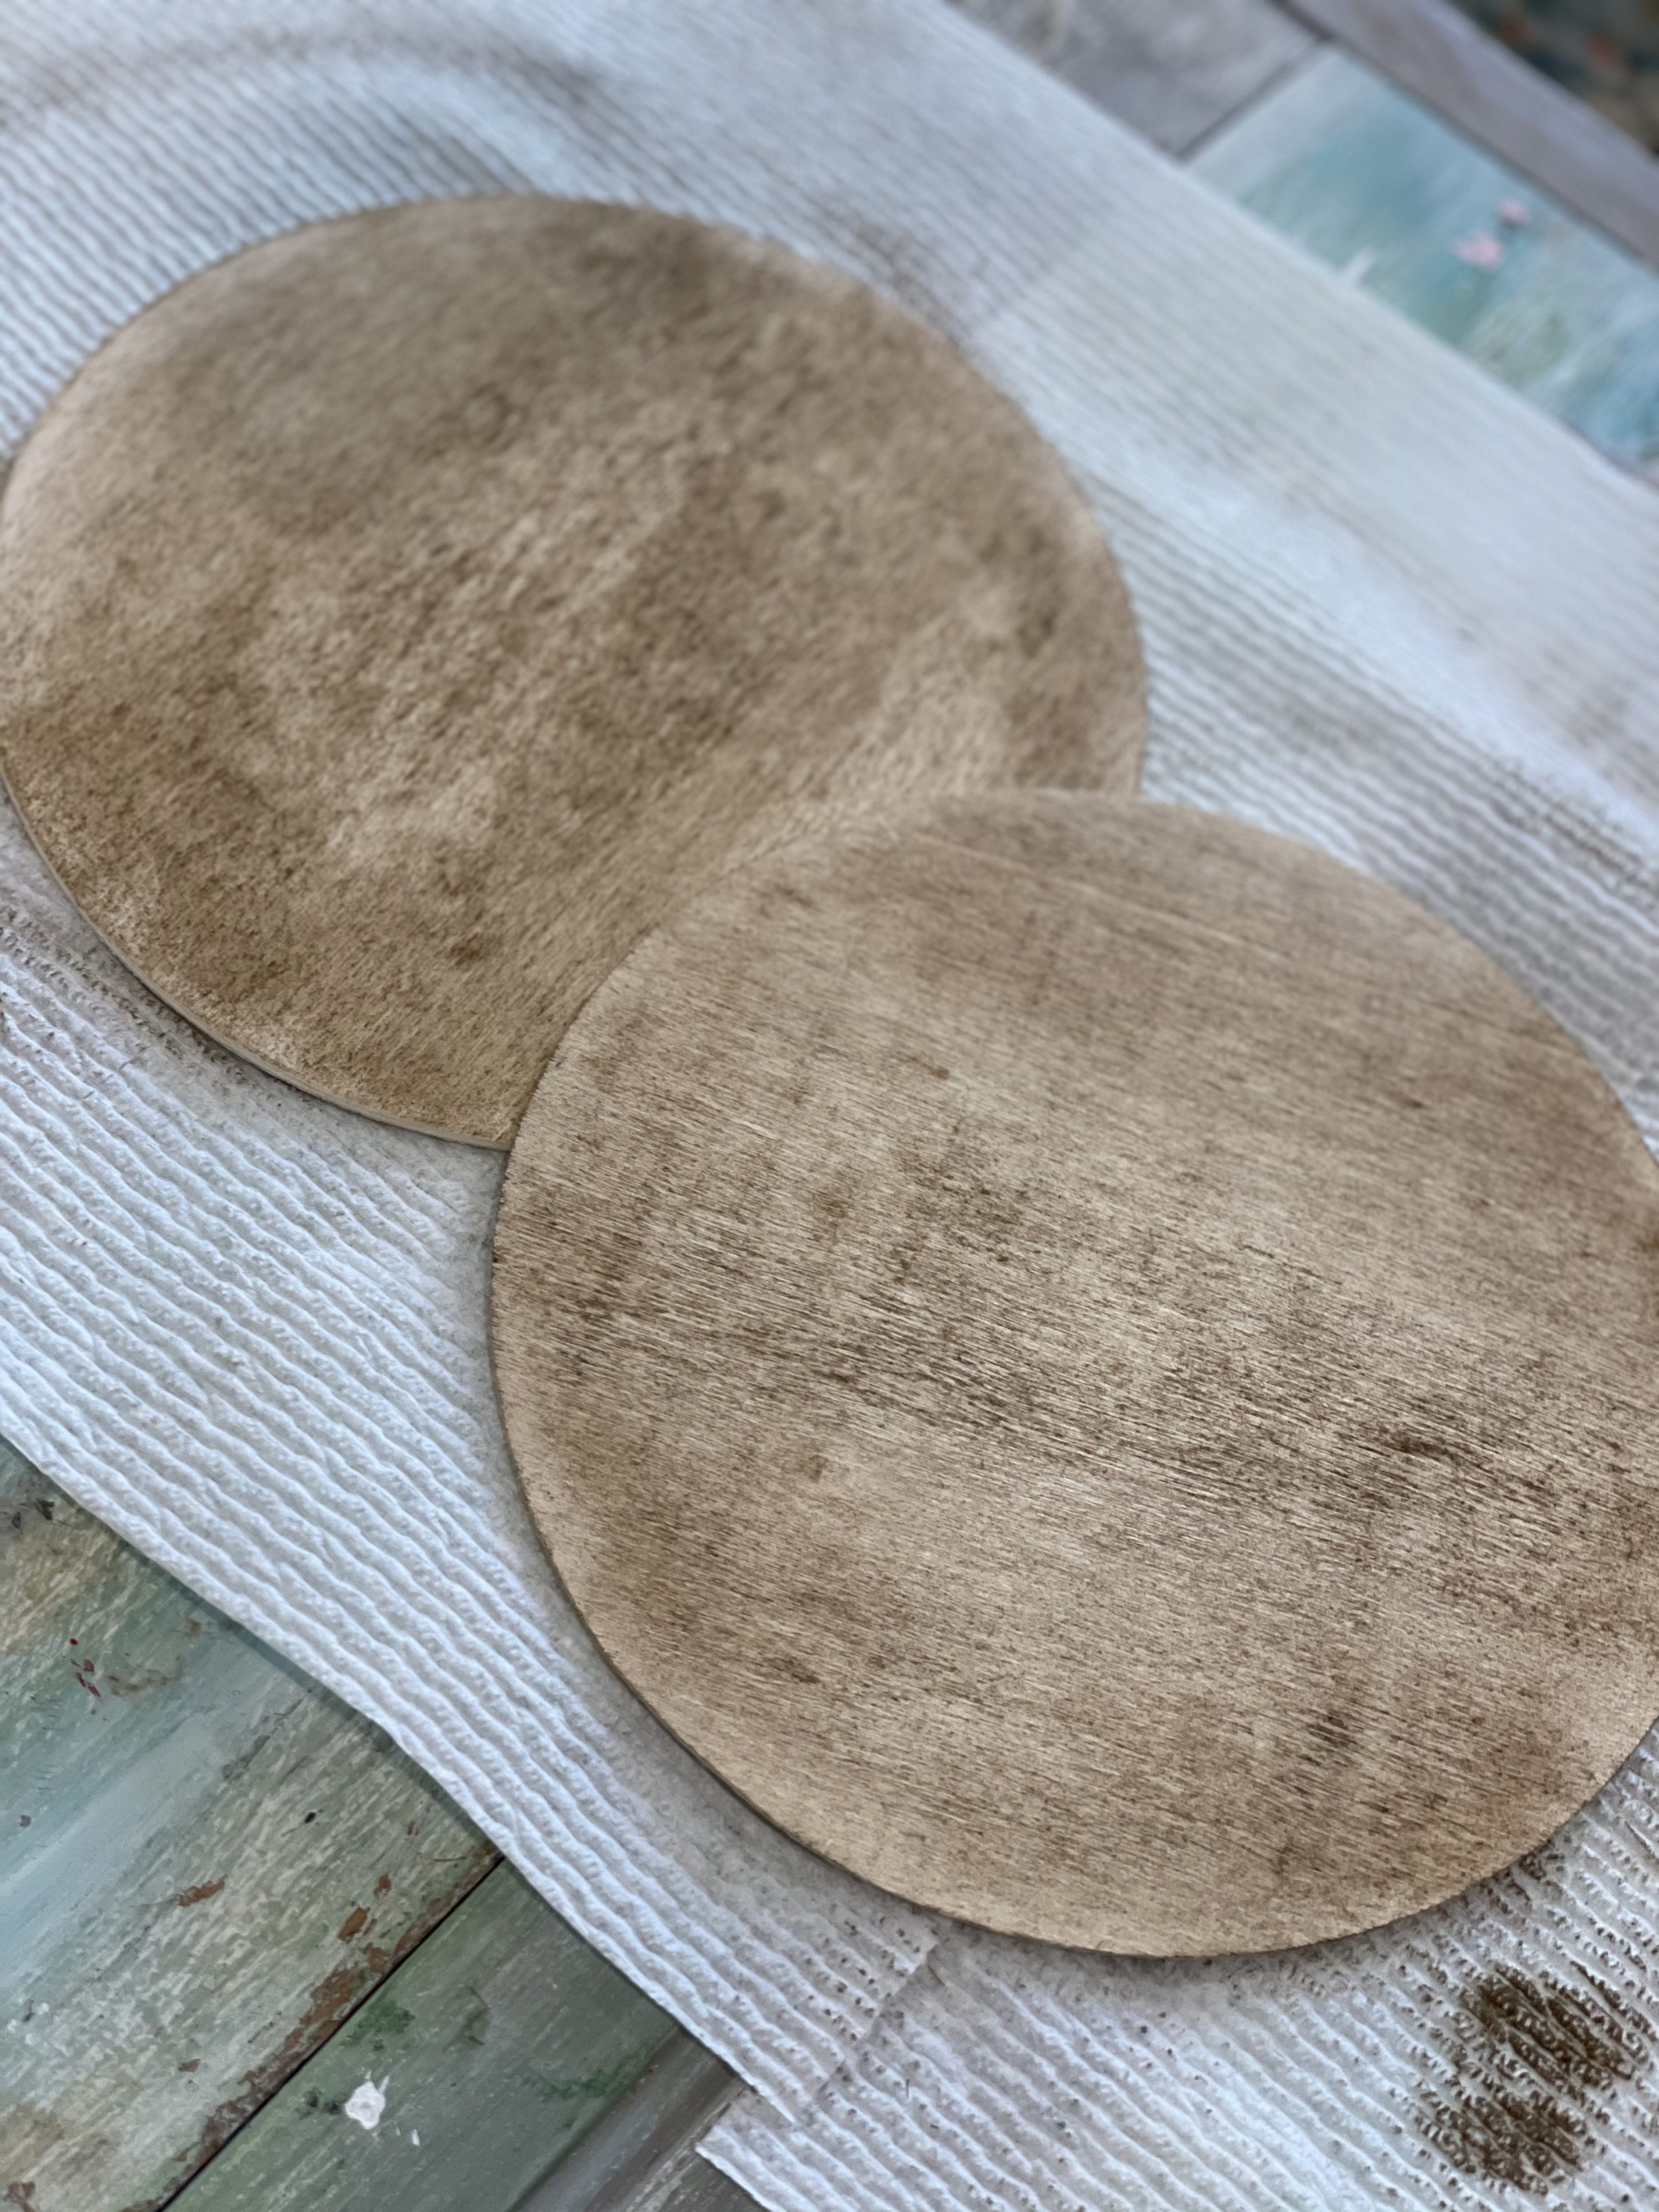 both stained wooden circles